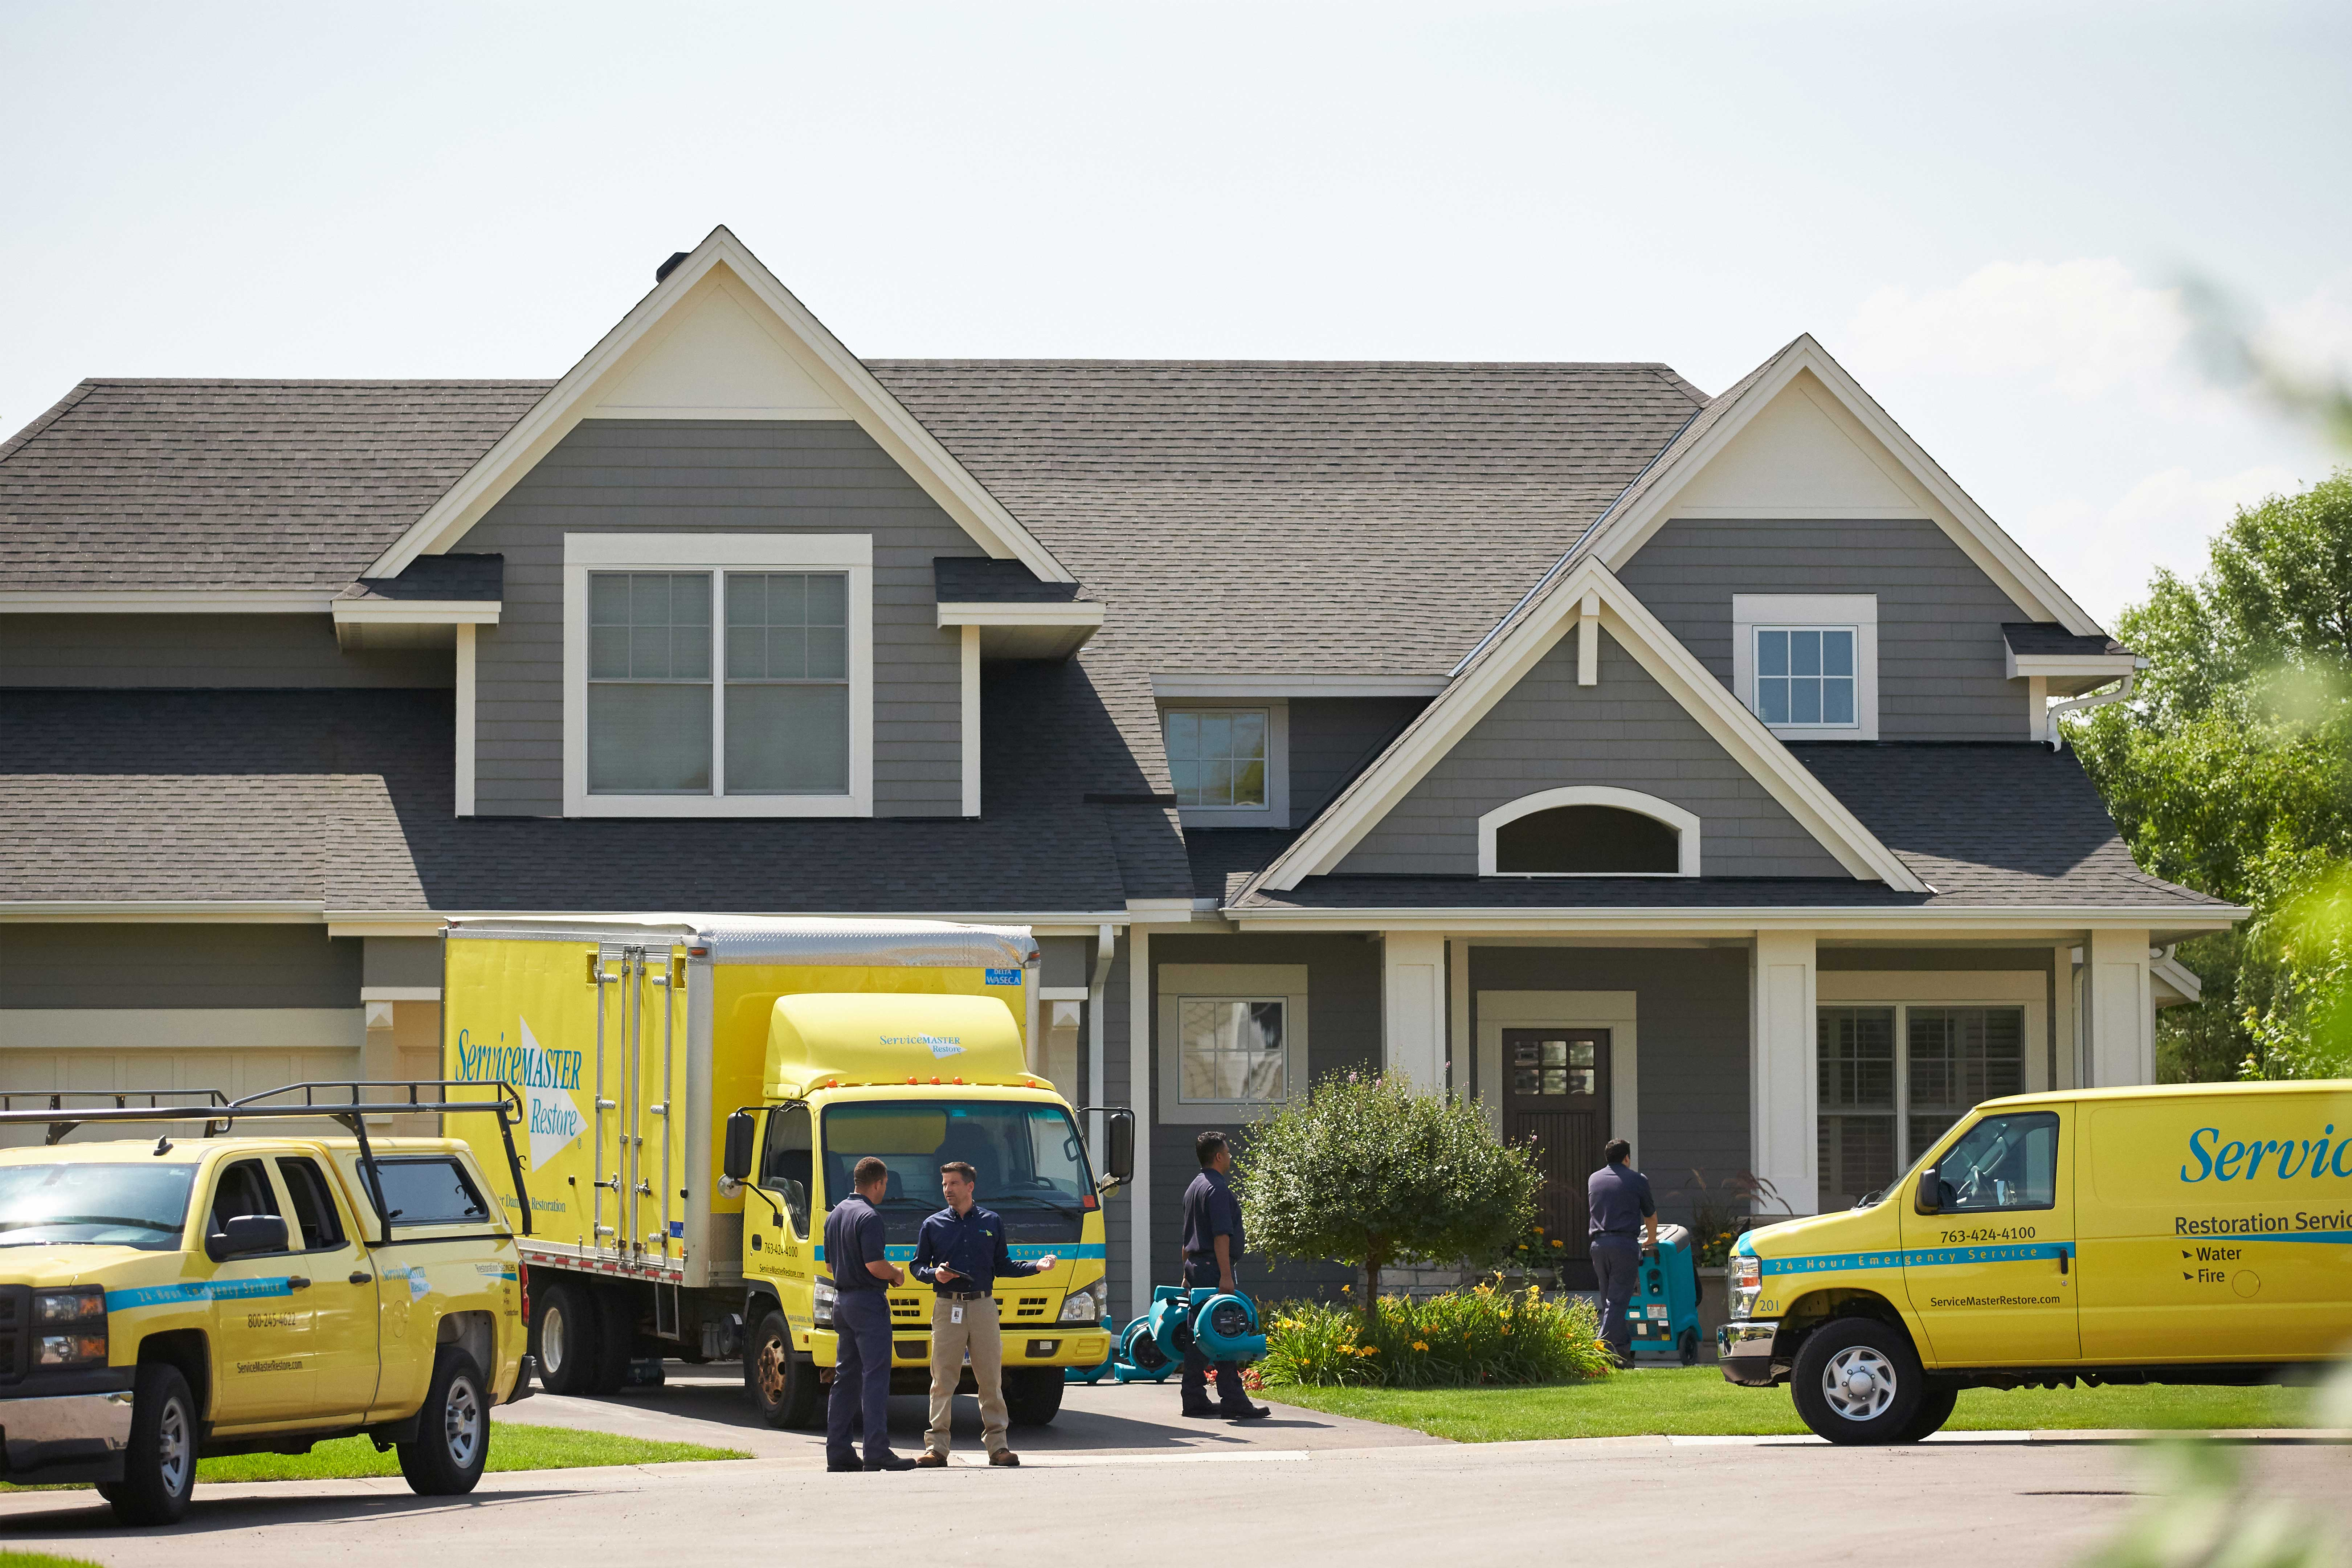 image of servicemaster vehicles at a house